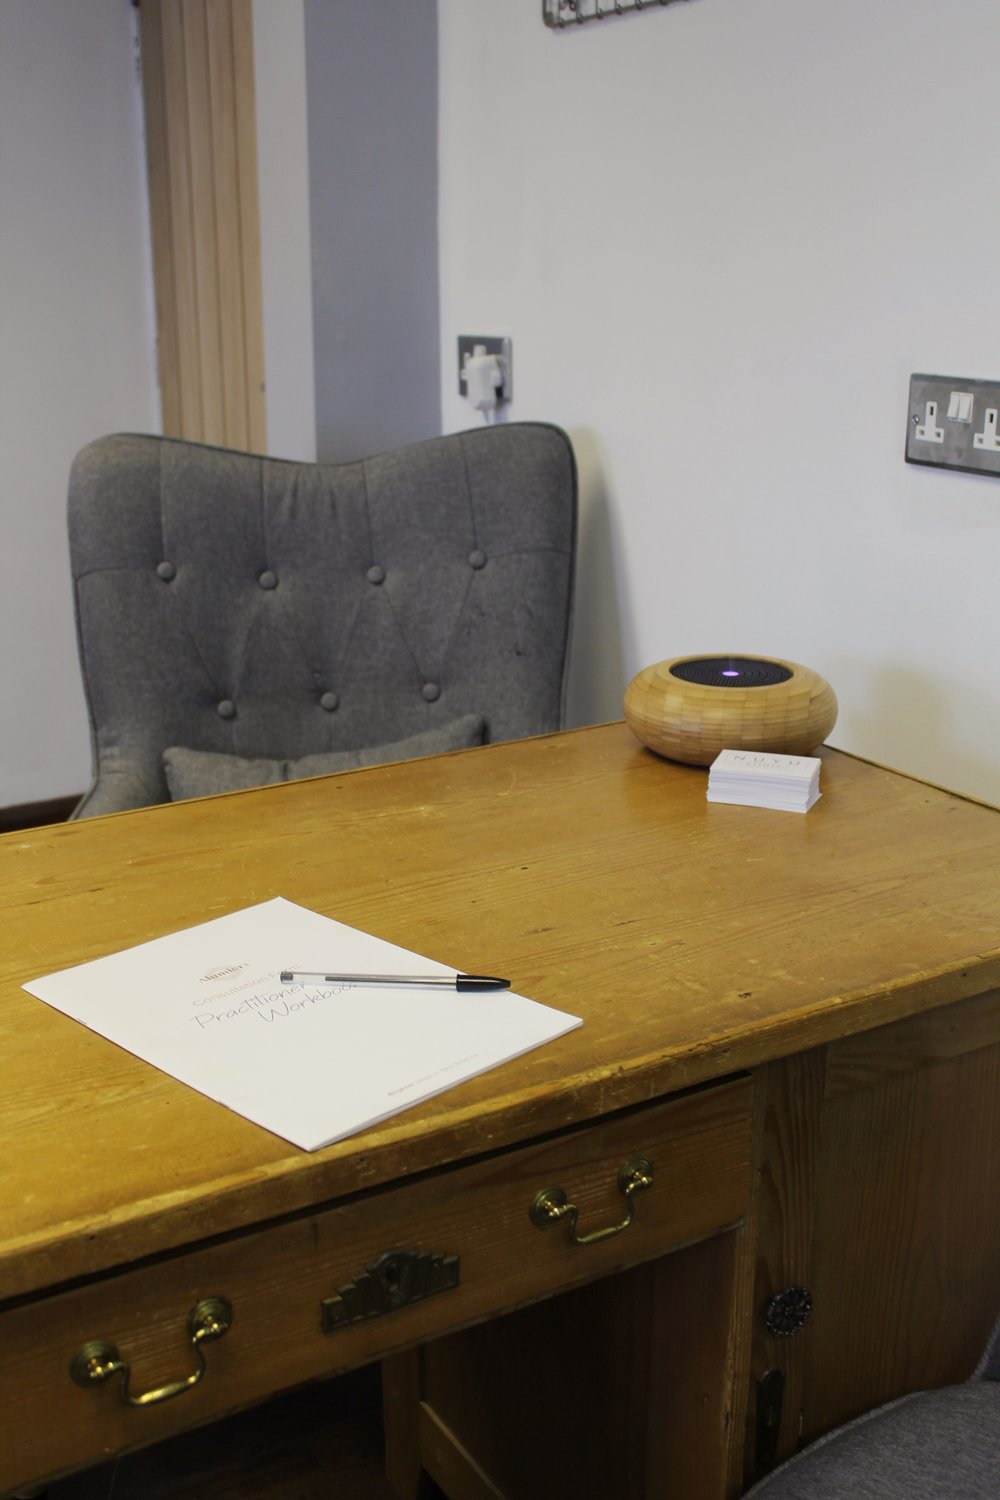 consultation area – vitally important to allow you and your practitioner to have the same goals!